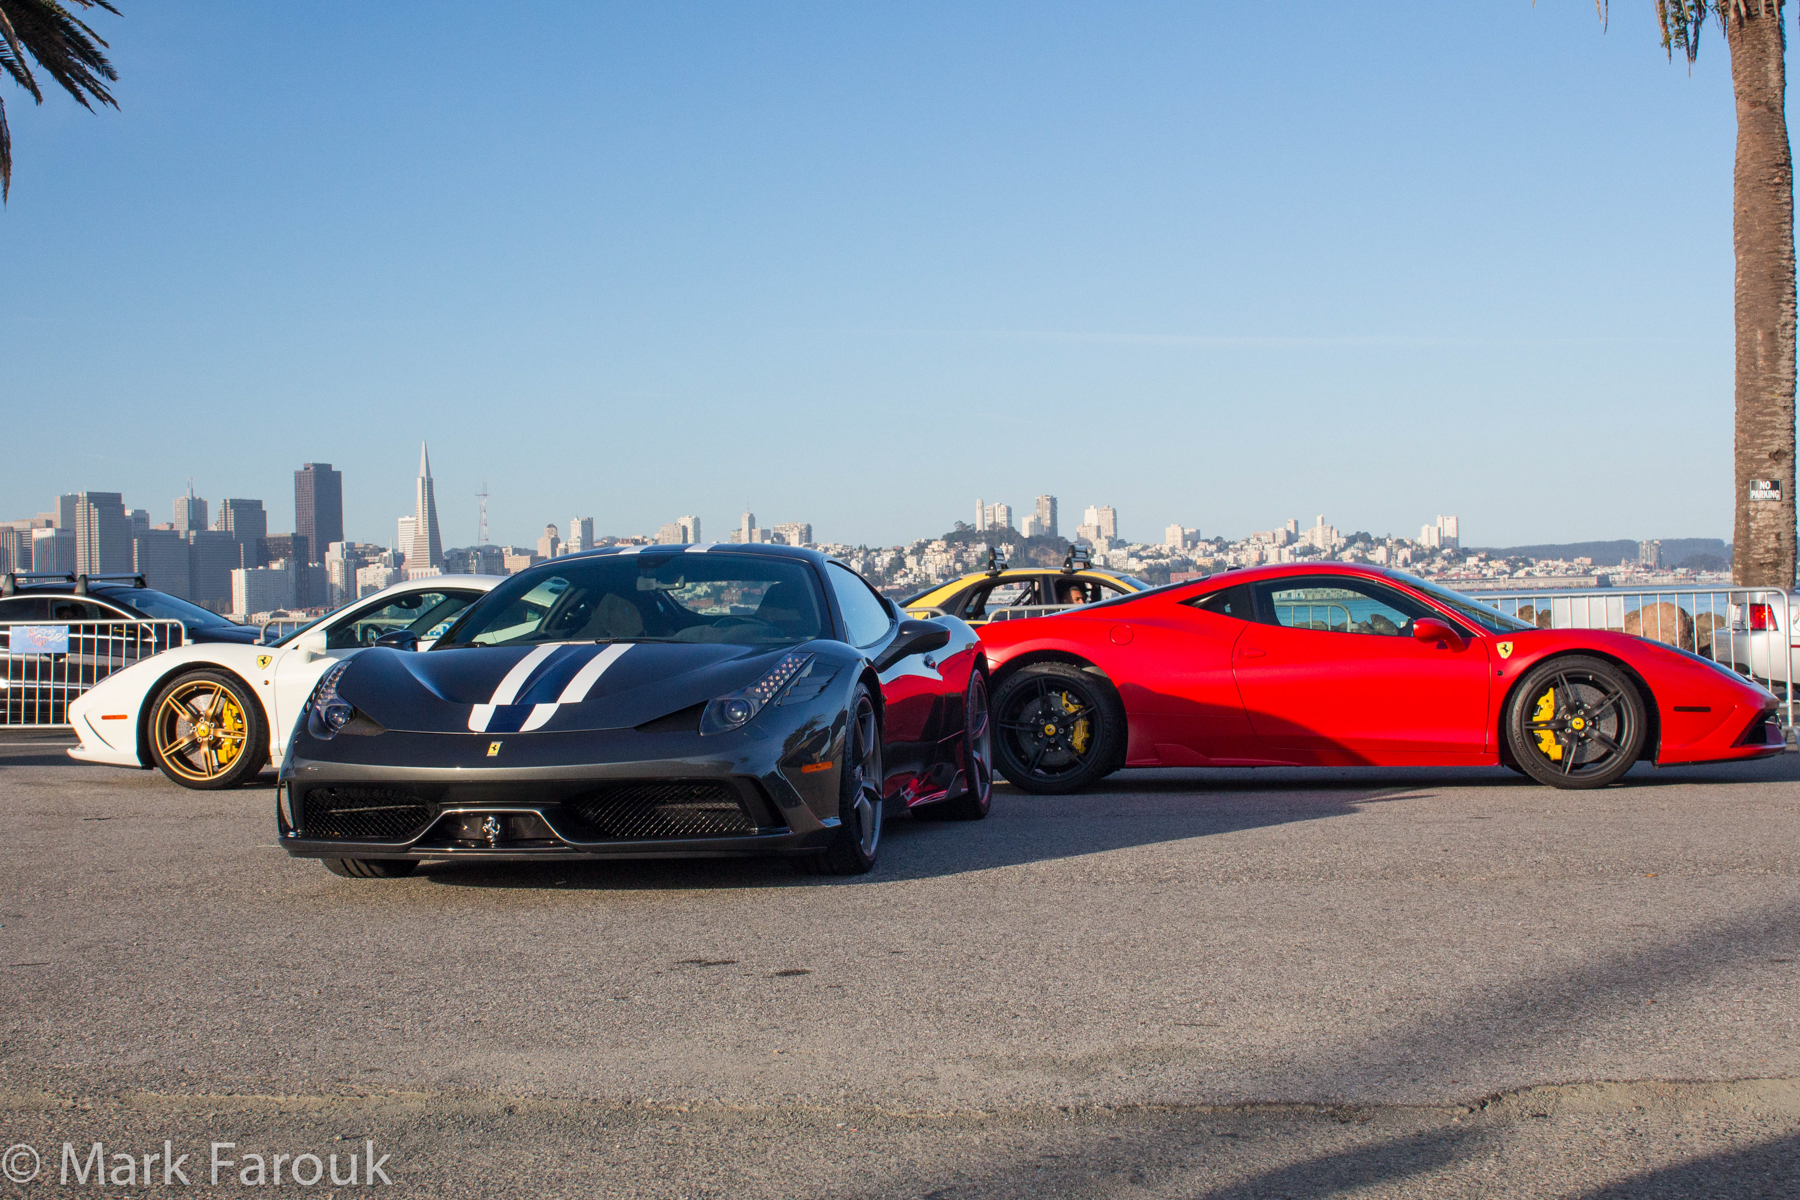 Like bright candy filled eggs, several Ferraris were displayed in a pattern delivering a matrix of pigment.